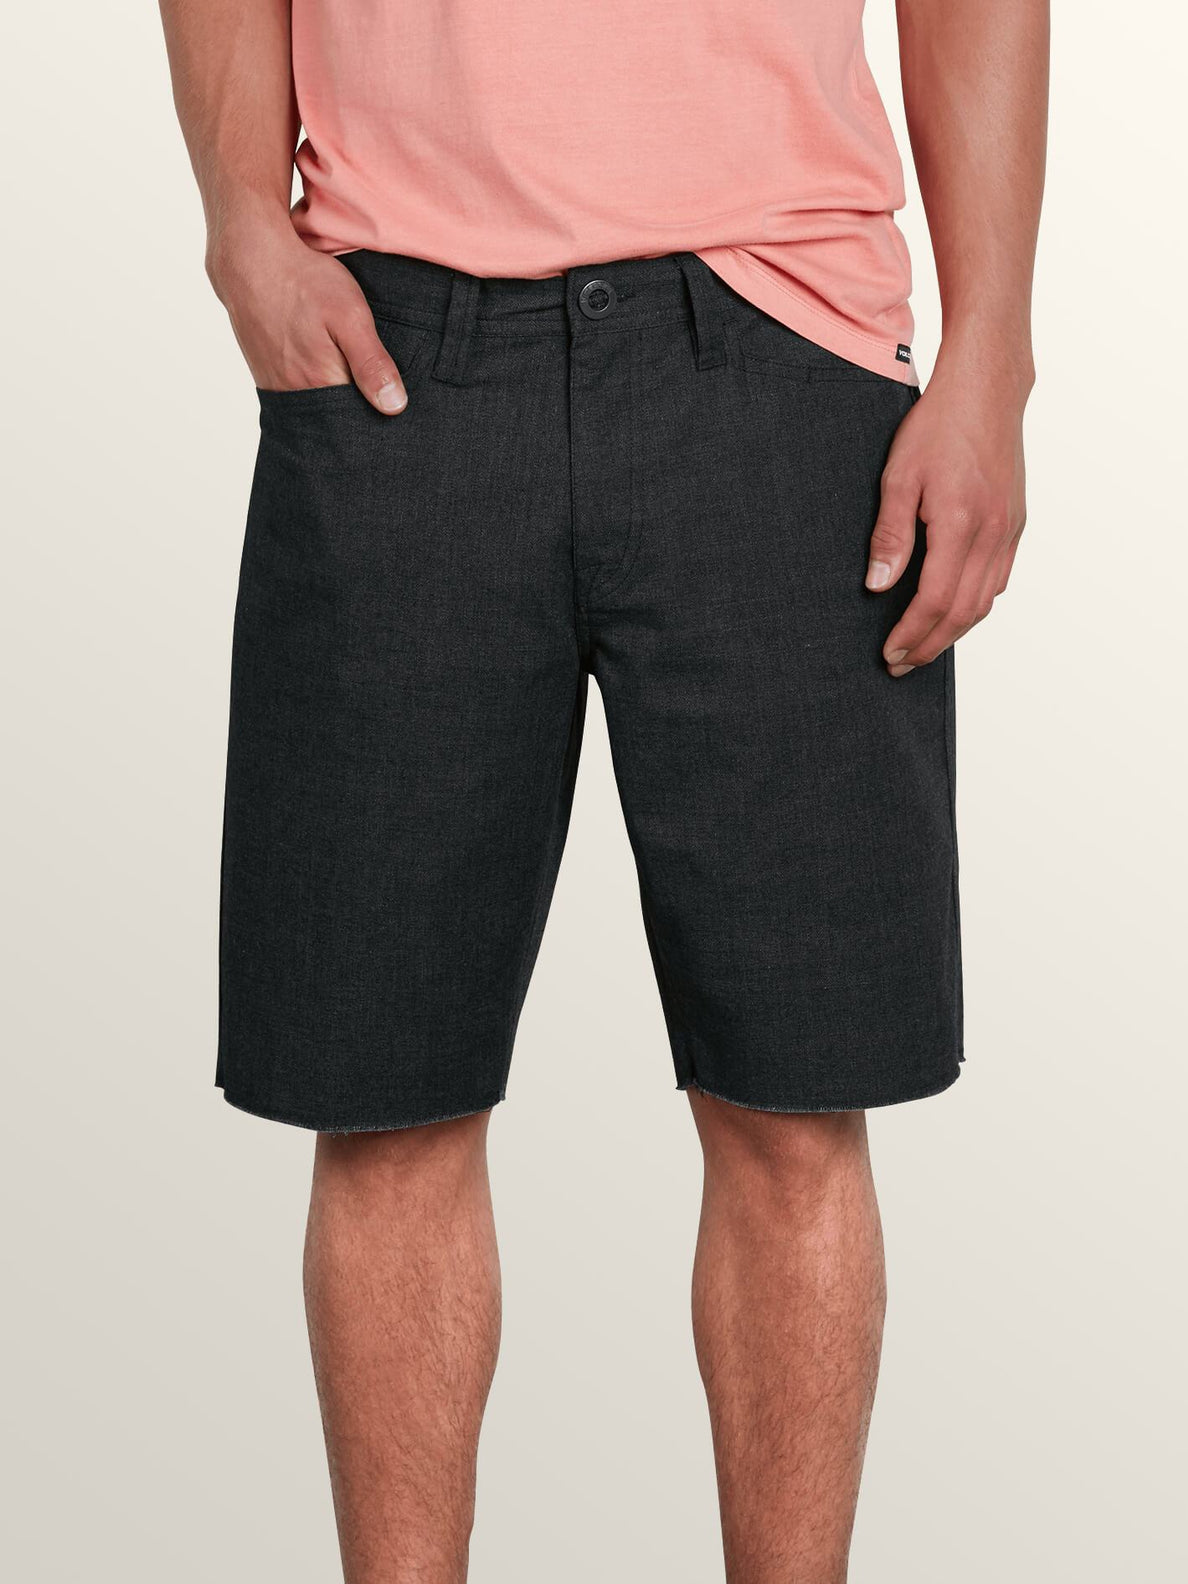 Gritter Thrifter Shorts In Gunmetal Grey, Front View